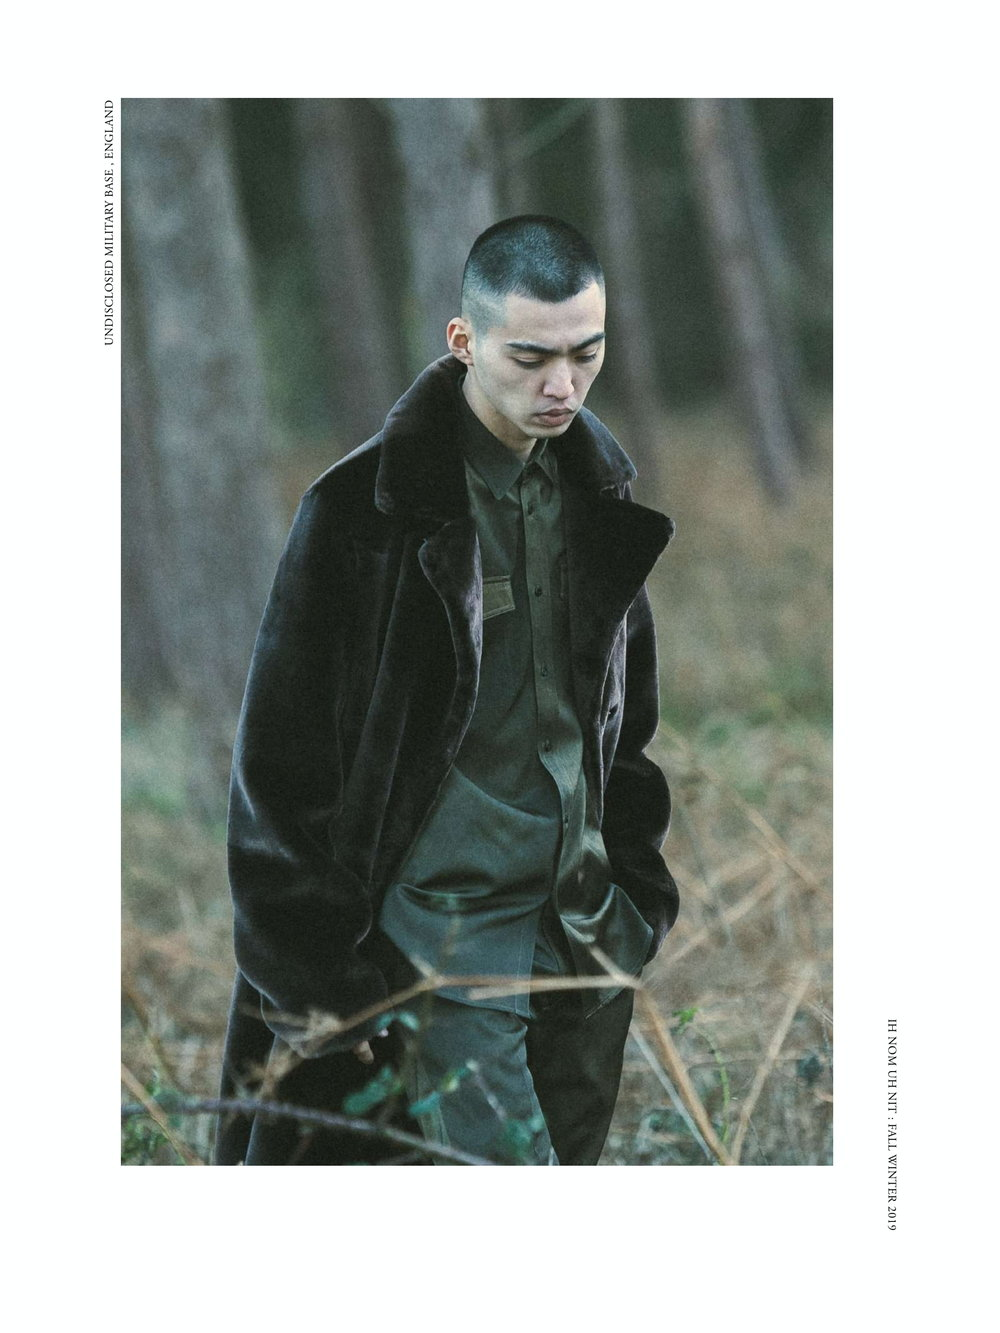 FW19 MAN LOOK BOOK -21.jpg